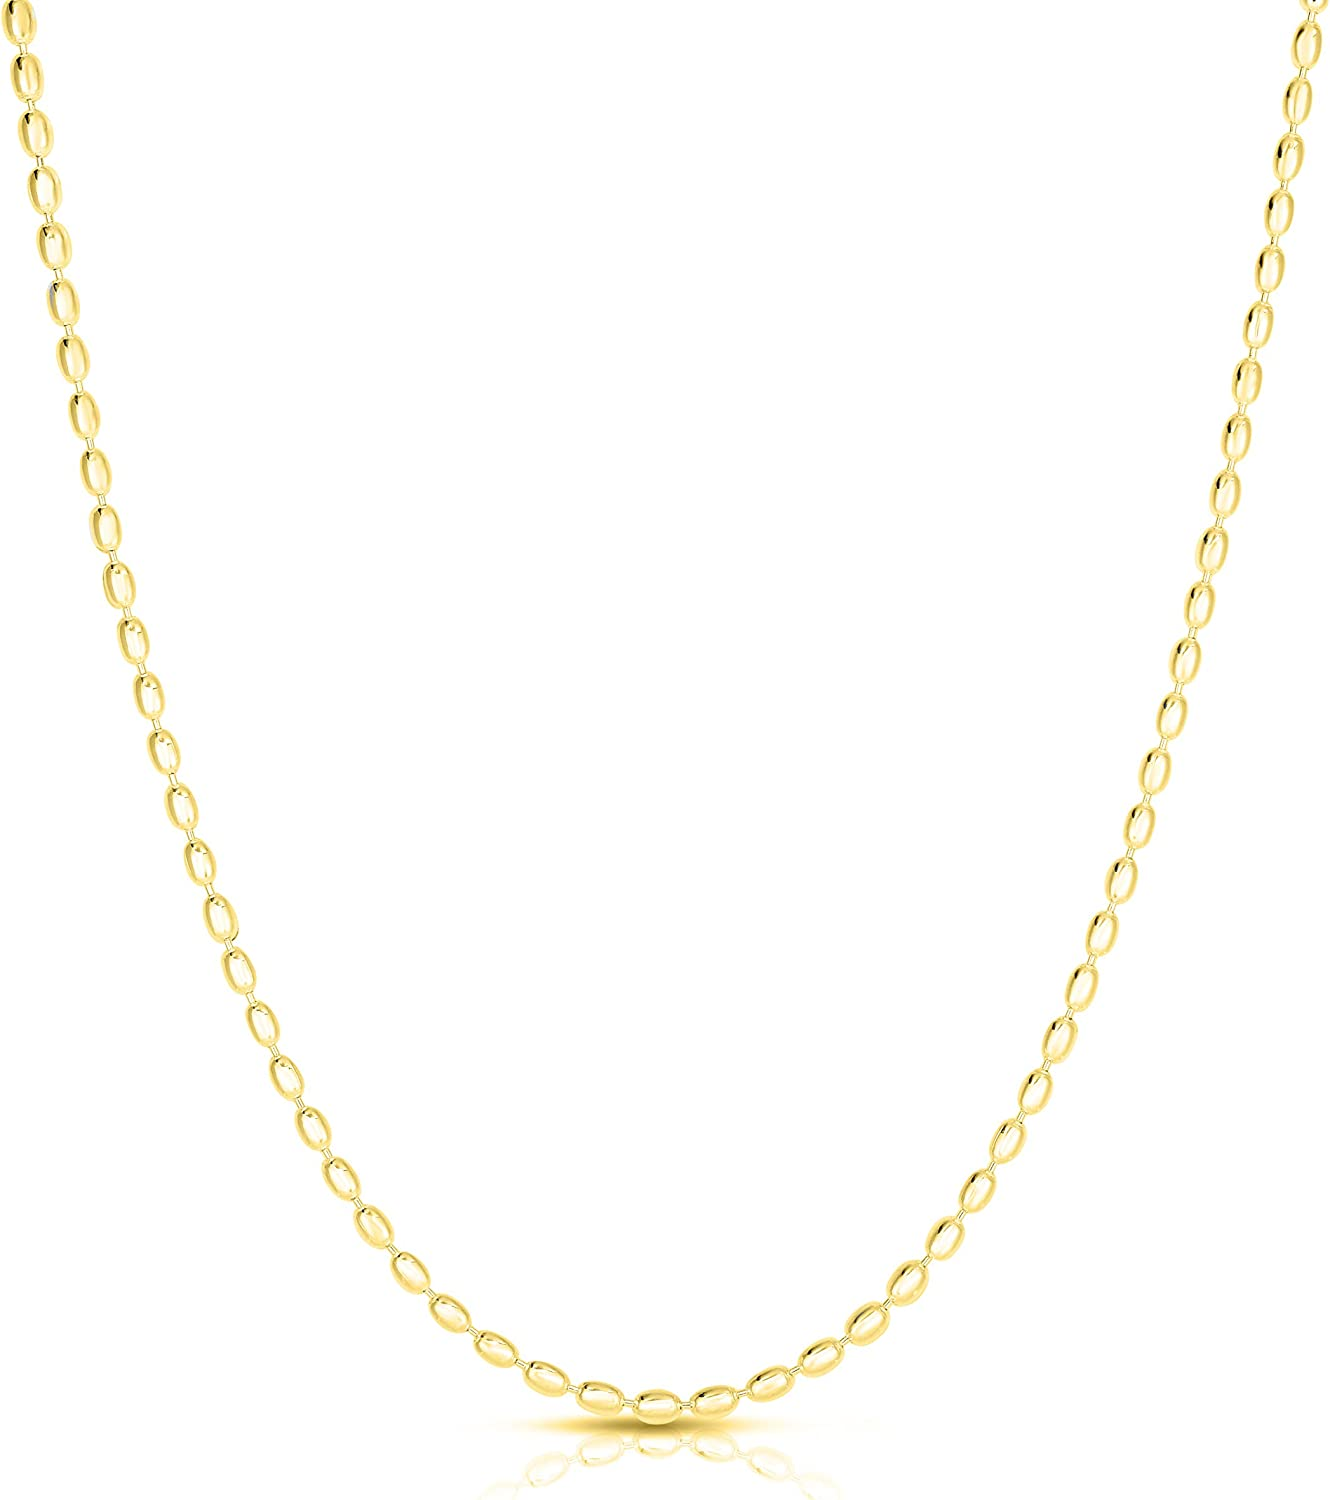 925 Sterling Silver Oval Bead お得セット 2.3MM 4MM ハイクオリティ 3MM Necklace